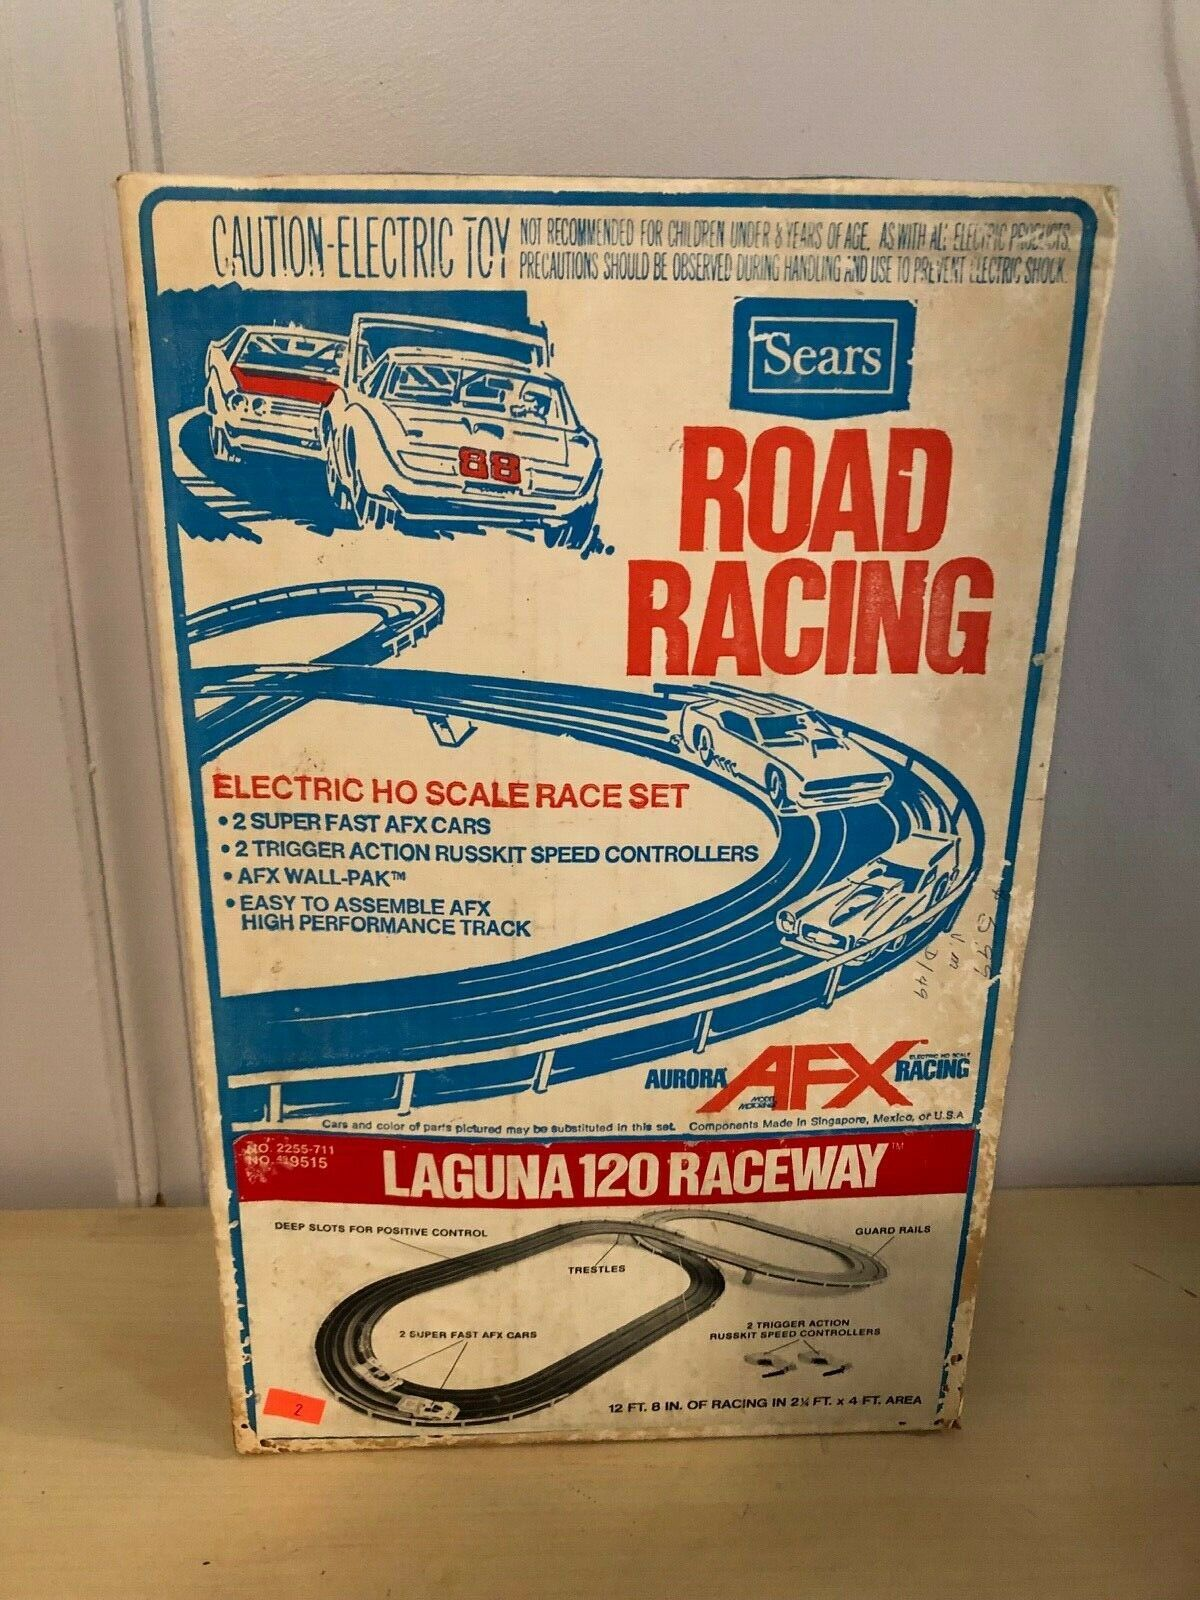 Old Vtg Sears Road Racing AFX Aurora Laguna 120 Raceway Play Set Toy With Box